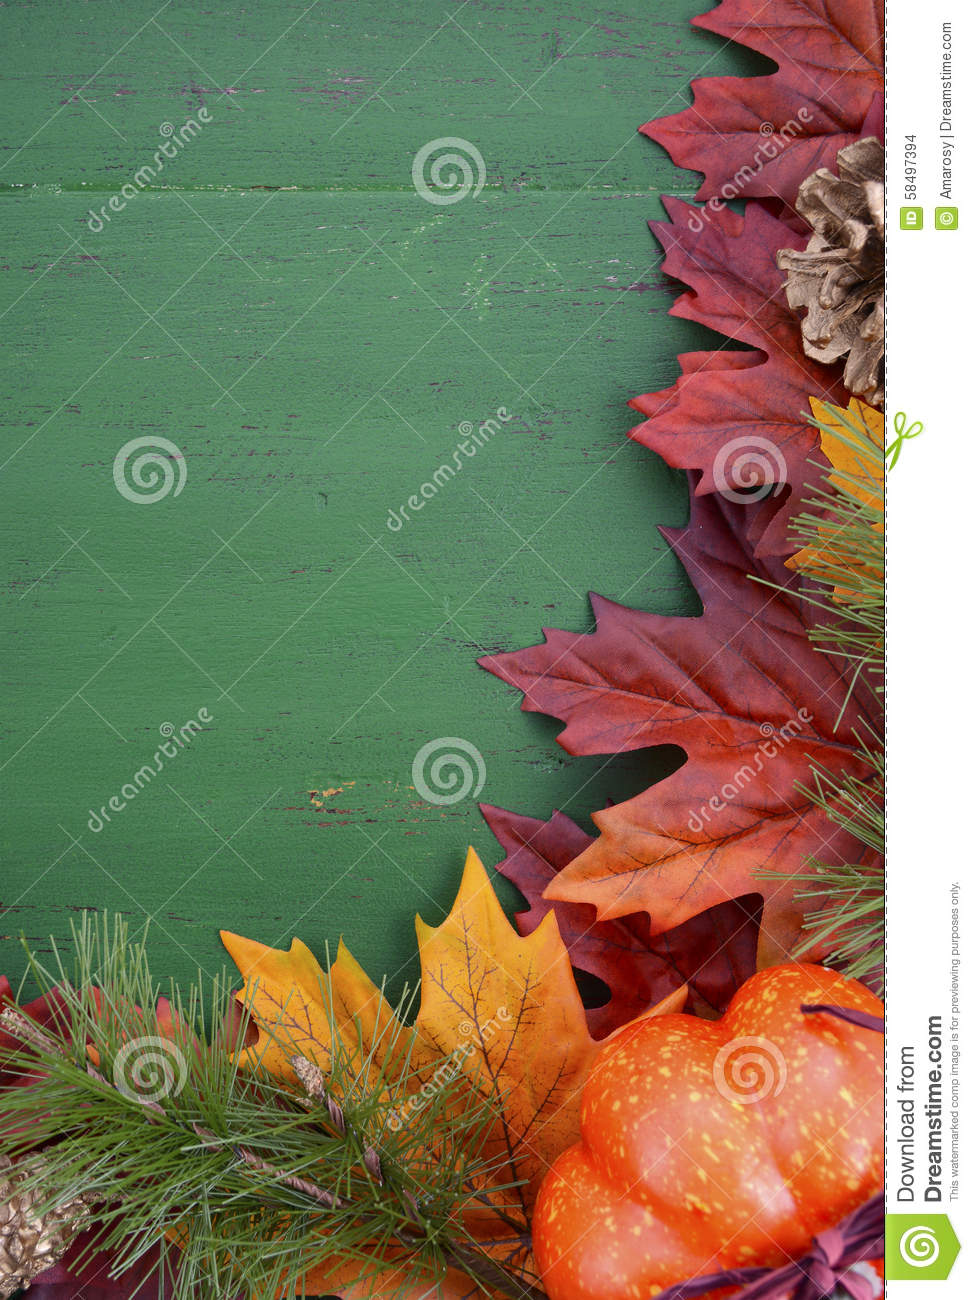 Autumn Fall Rustic Background On Green Vintage Distressed Wood With Leaves And Decorations